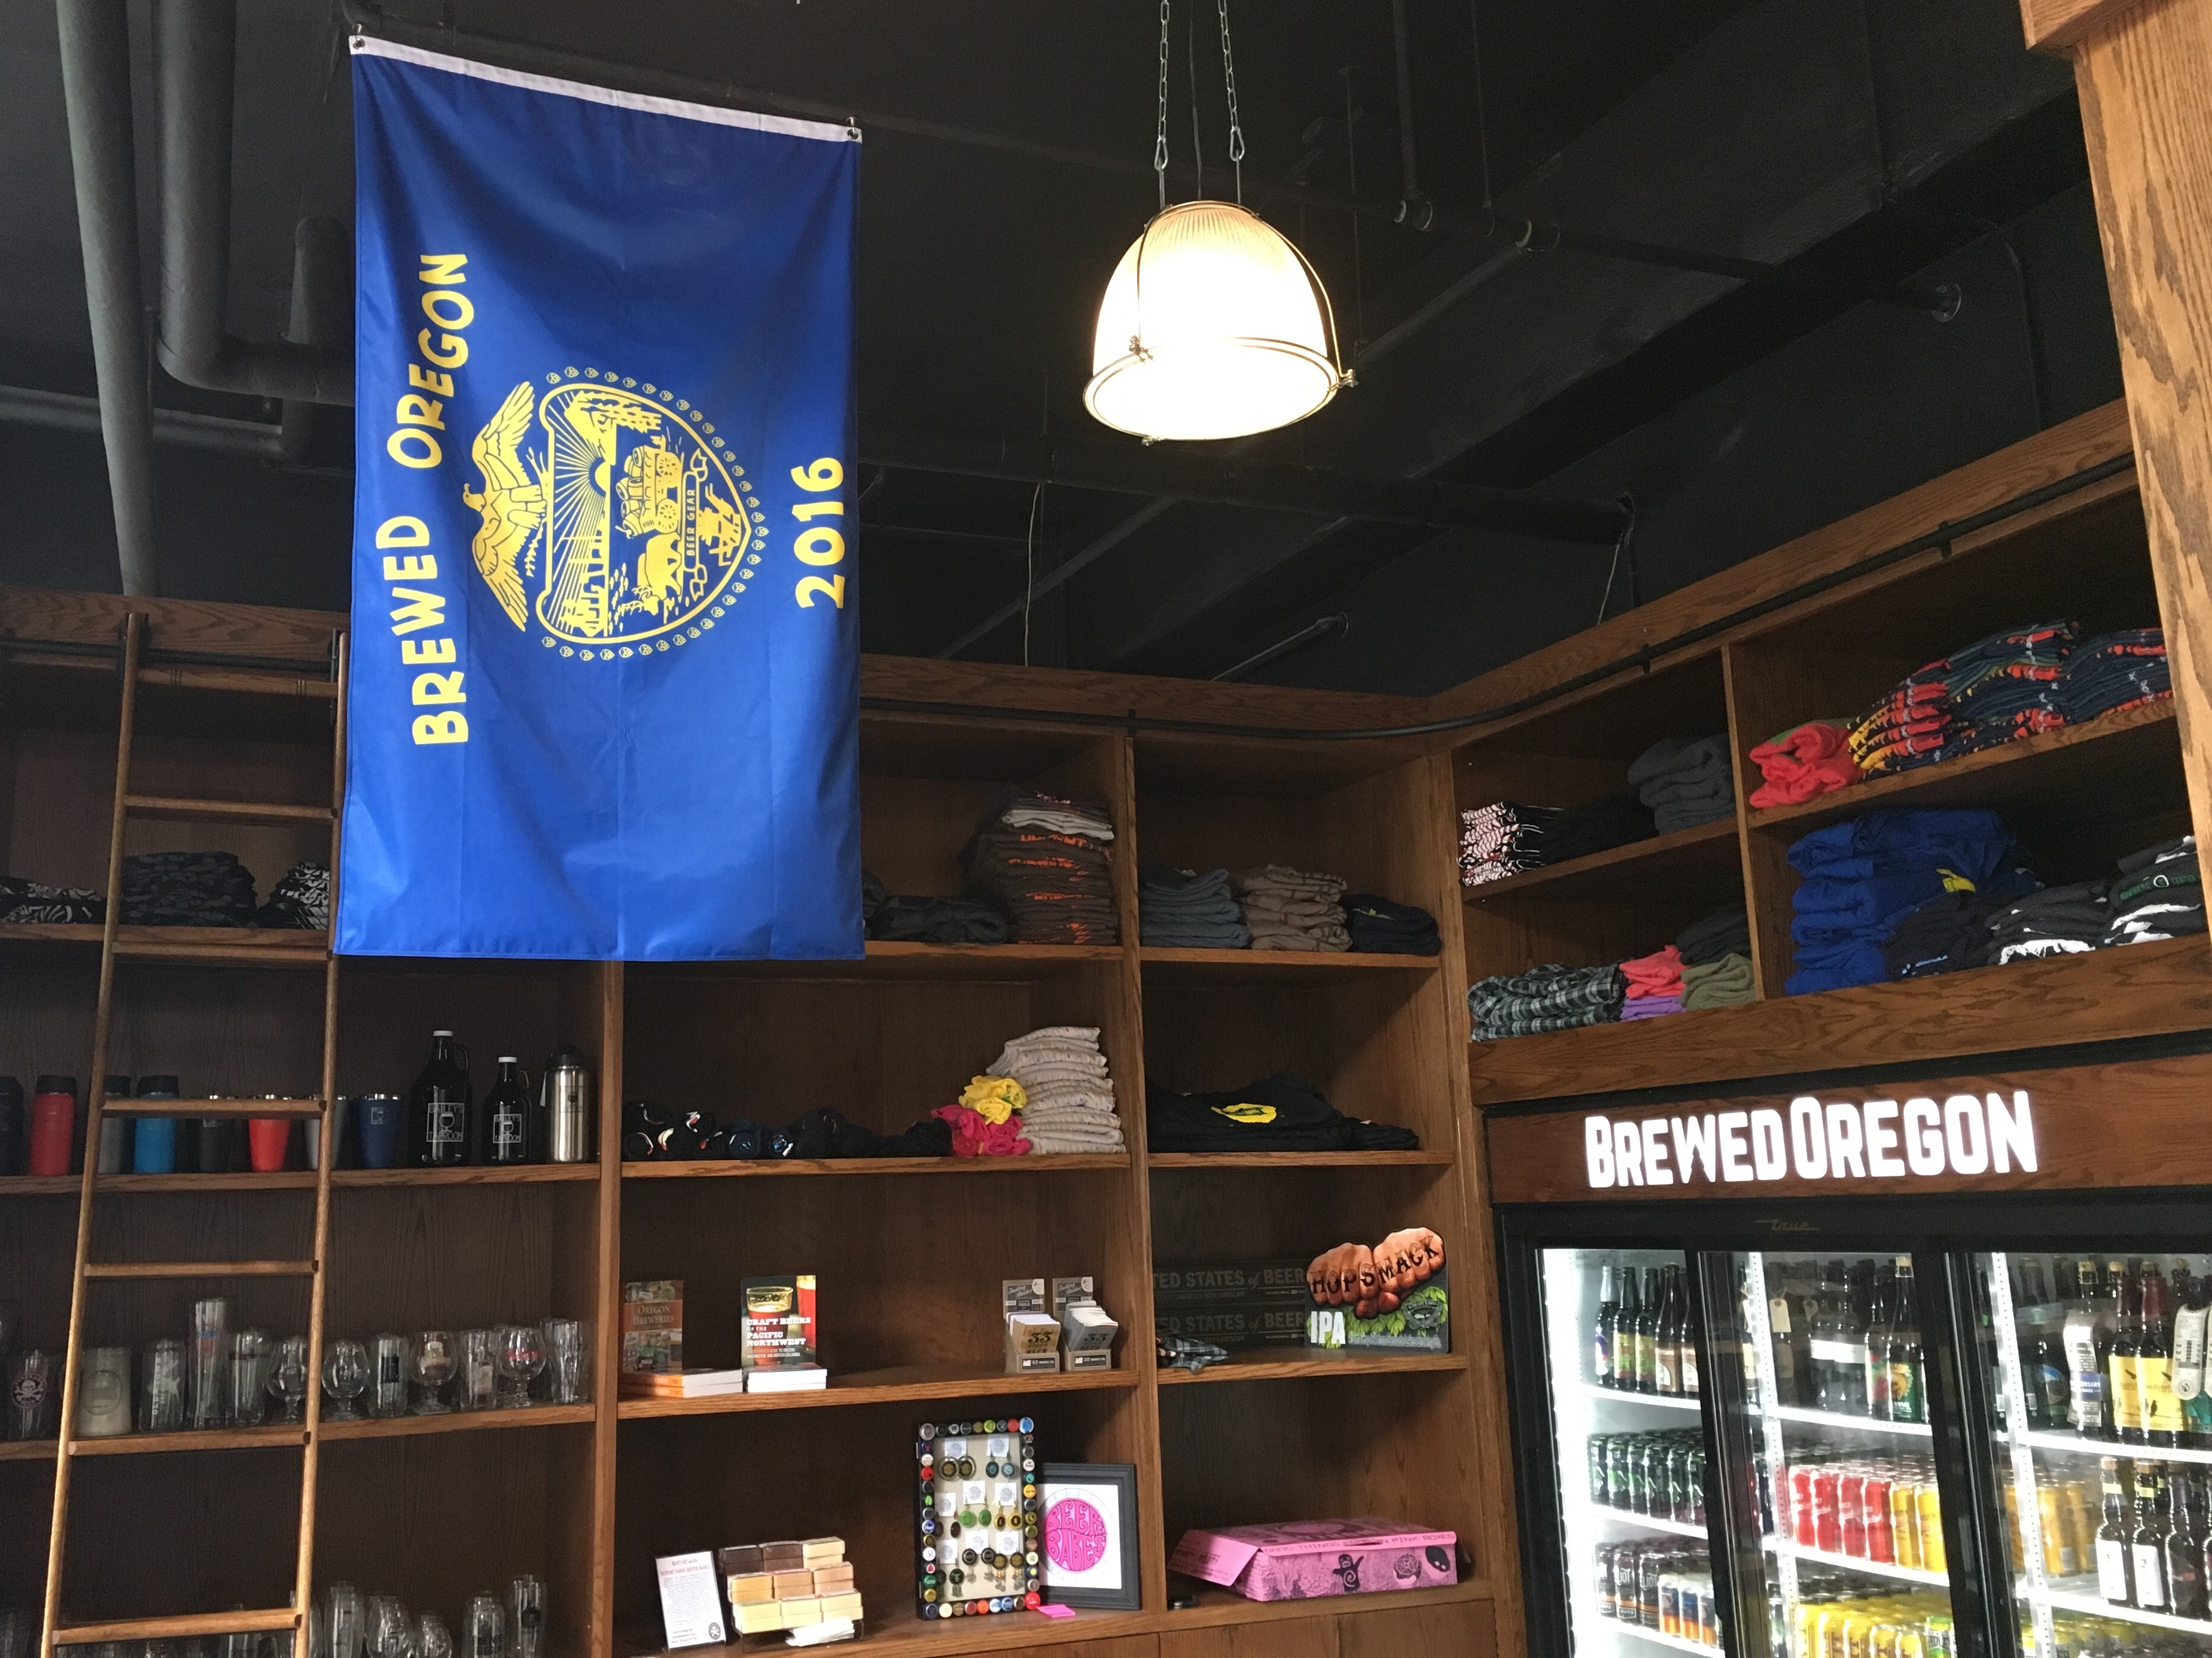 BrewedOregon flag proudly hanging over the Oregon brewery merchandise